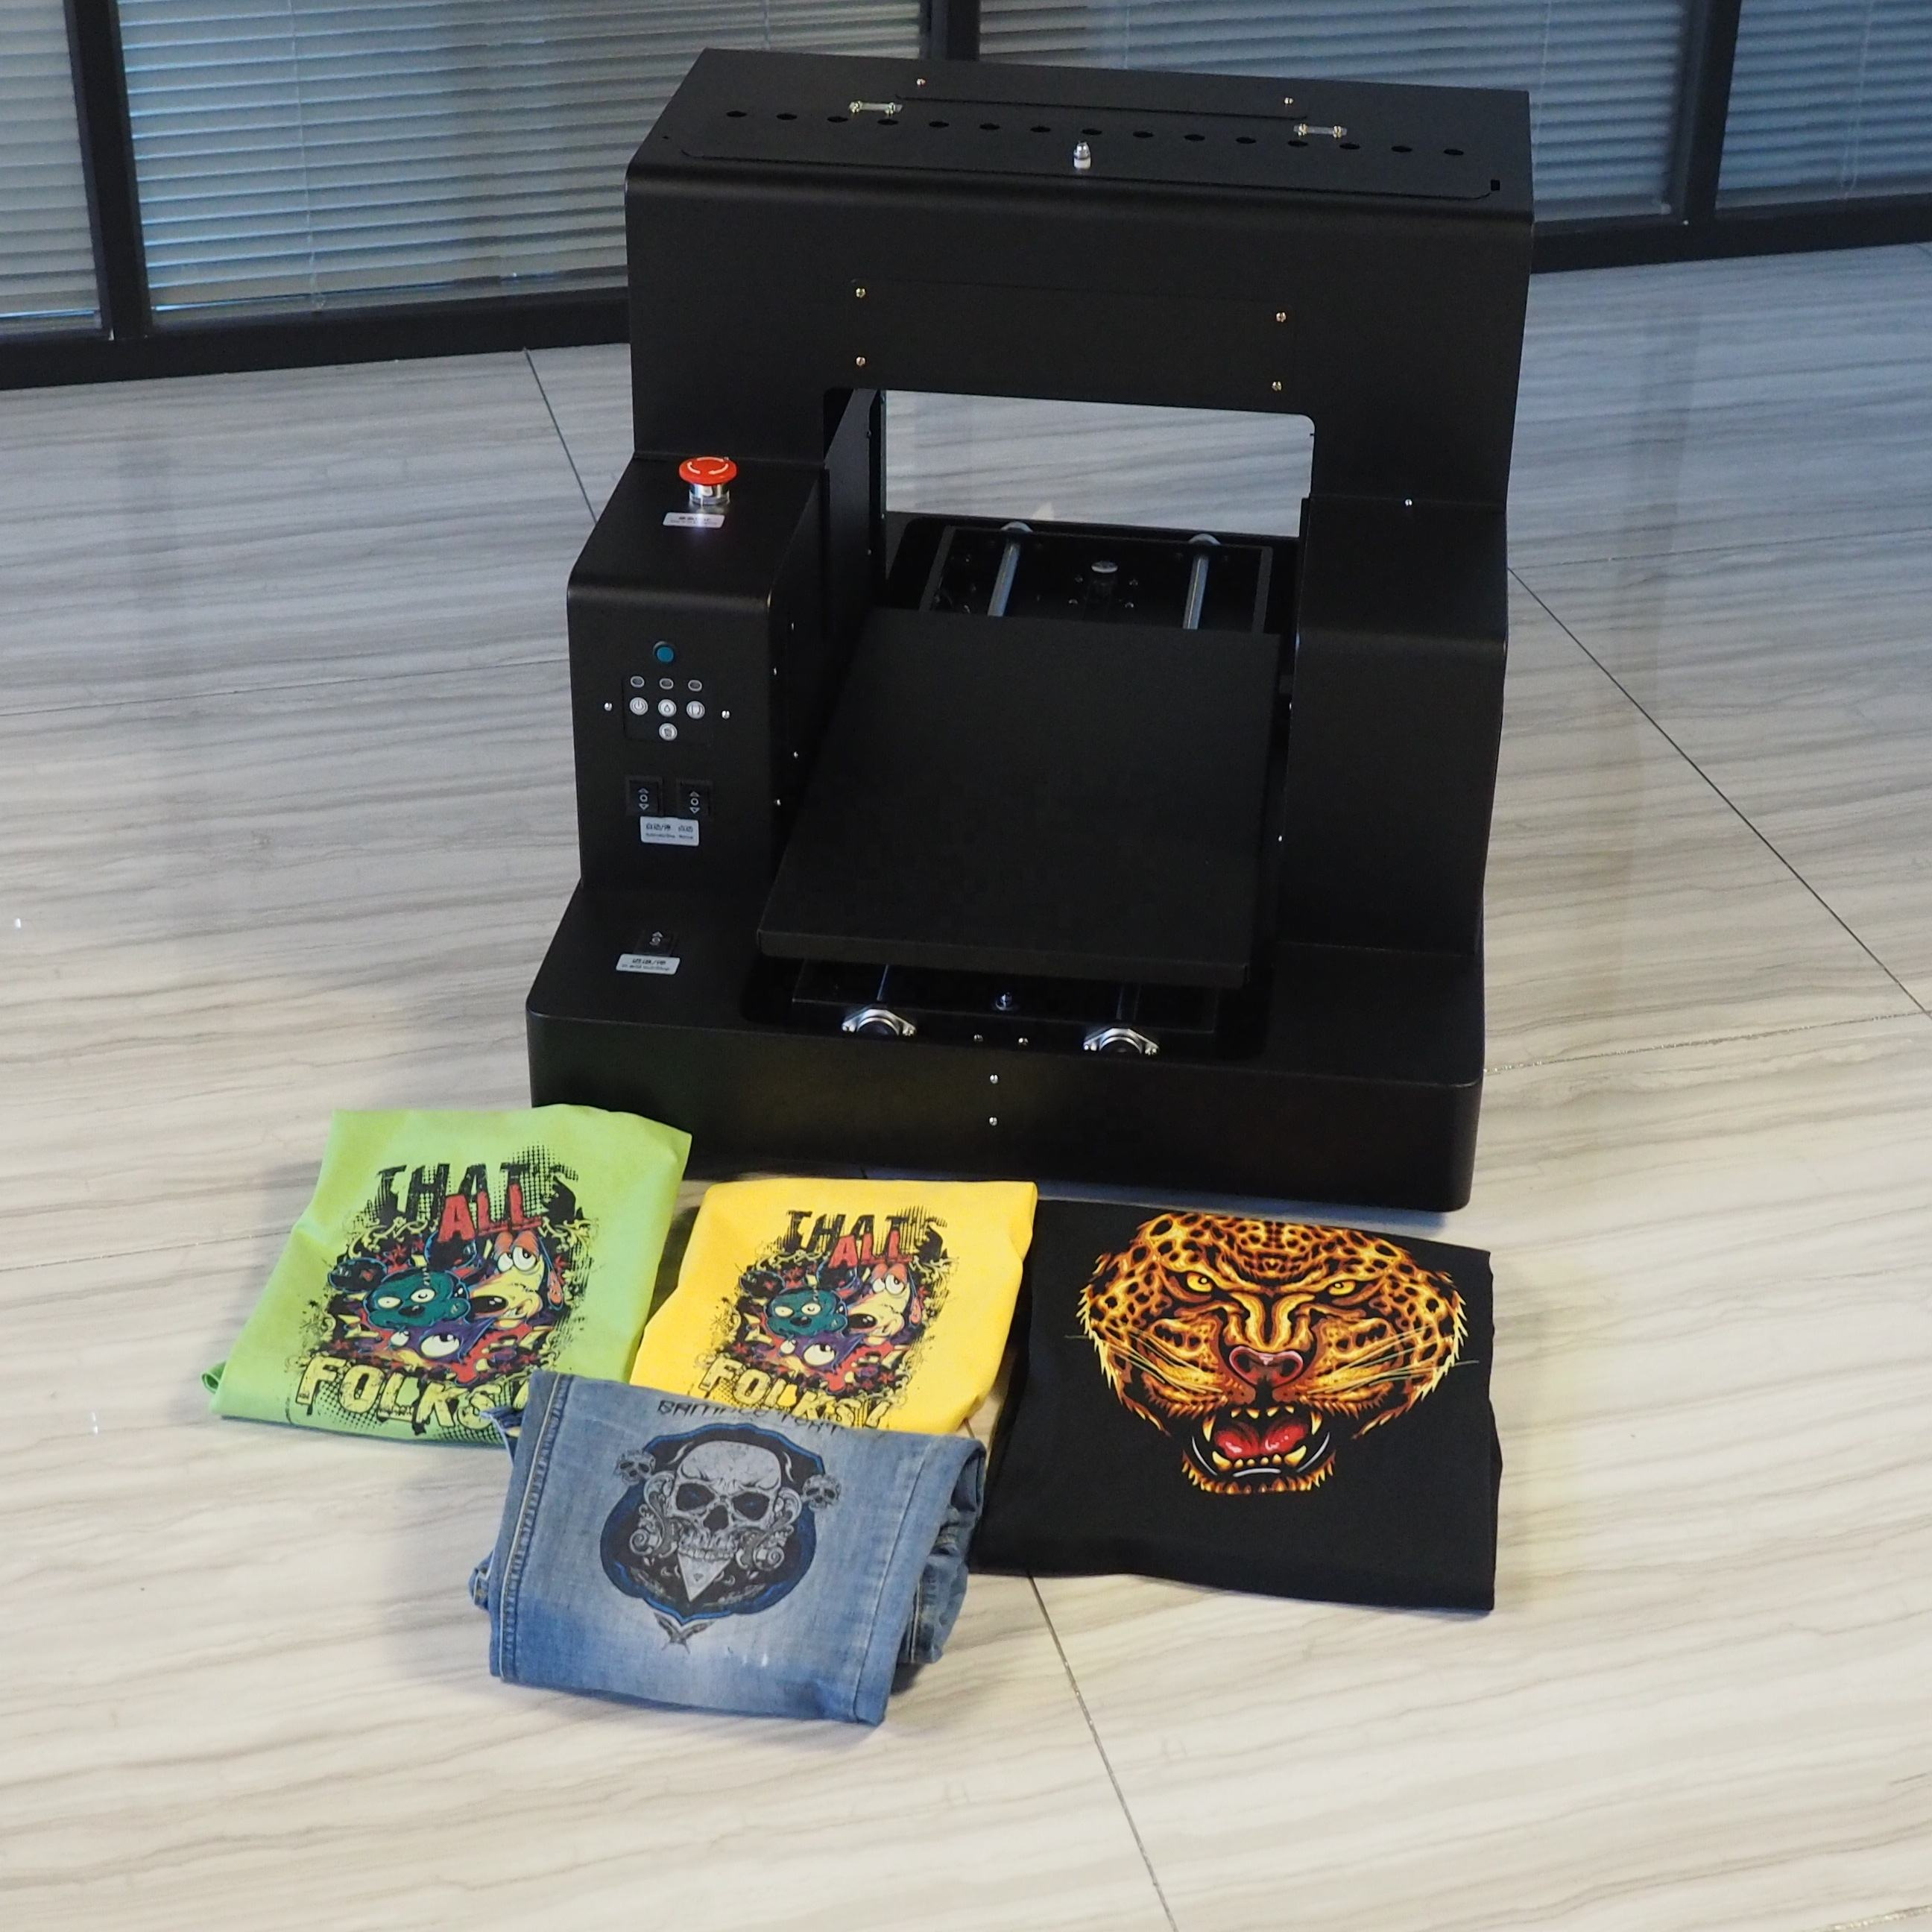 newest auto print A3 digital t-shirt printer for shoes,caps